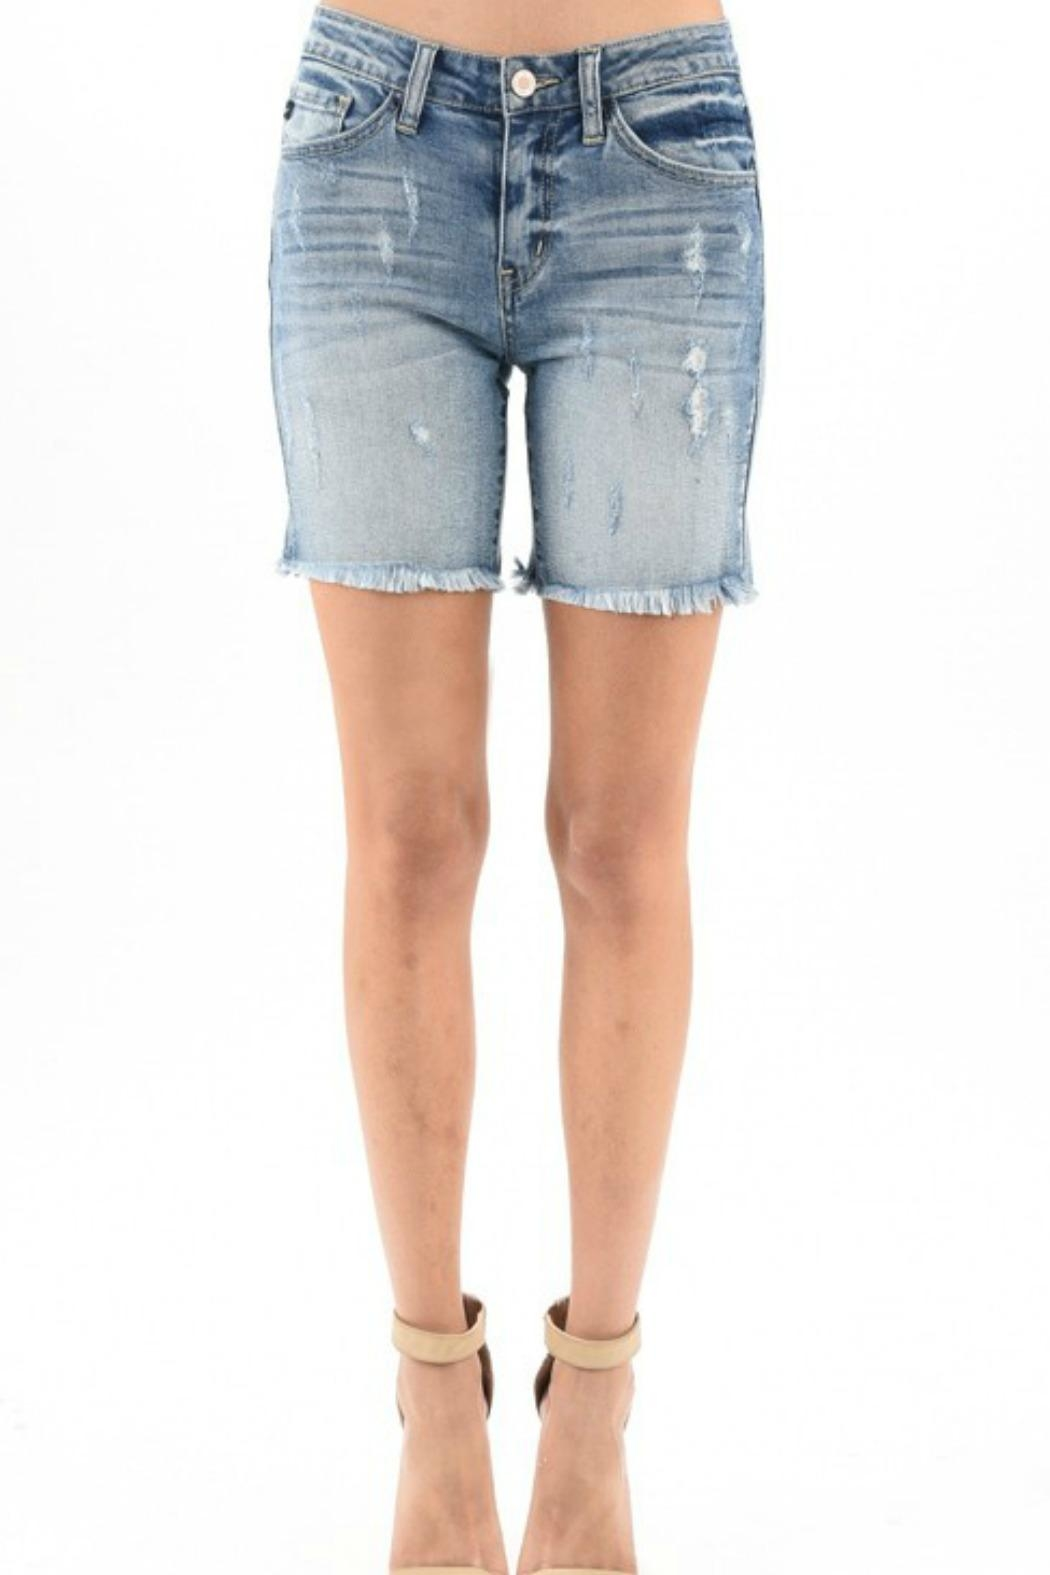 KanCan Distressed Denim Shorts - Main Image